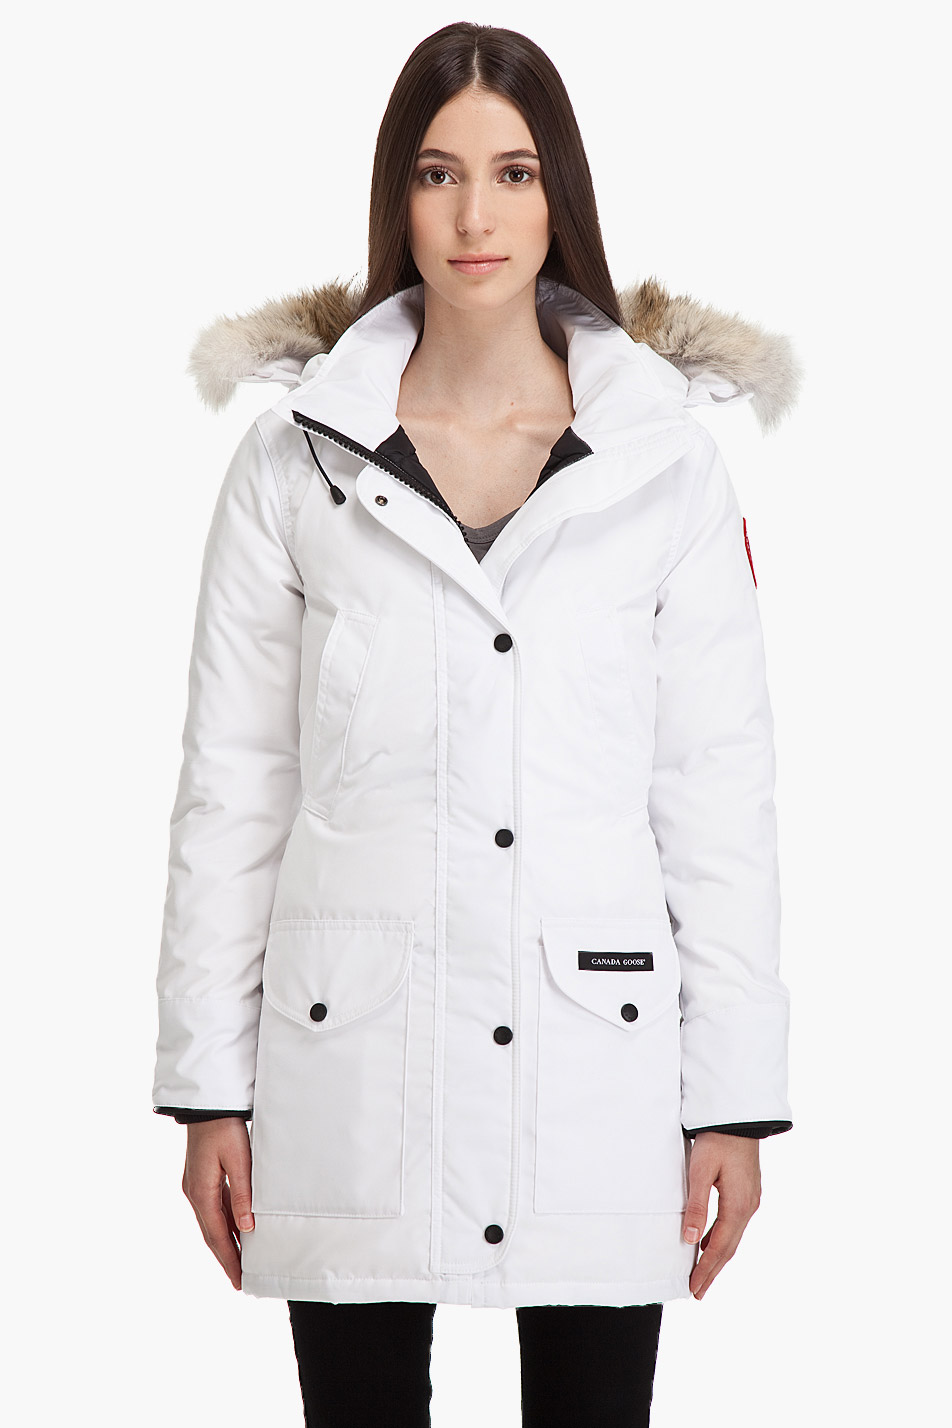 Women's winter jackets canada goose